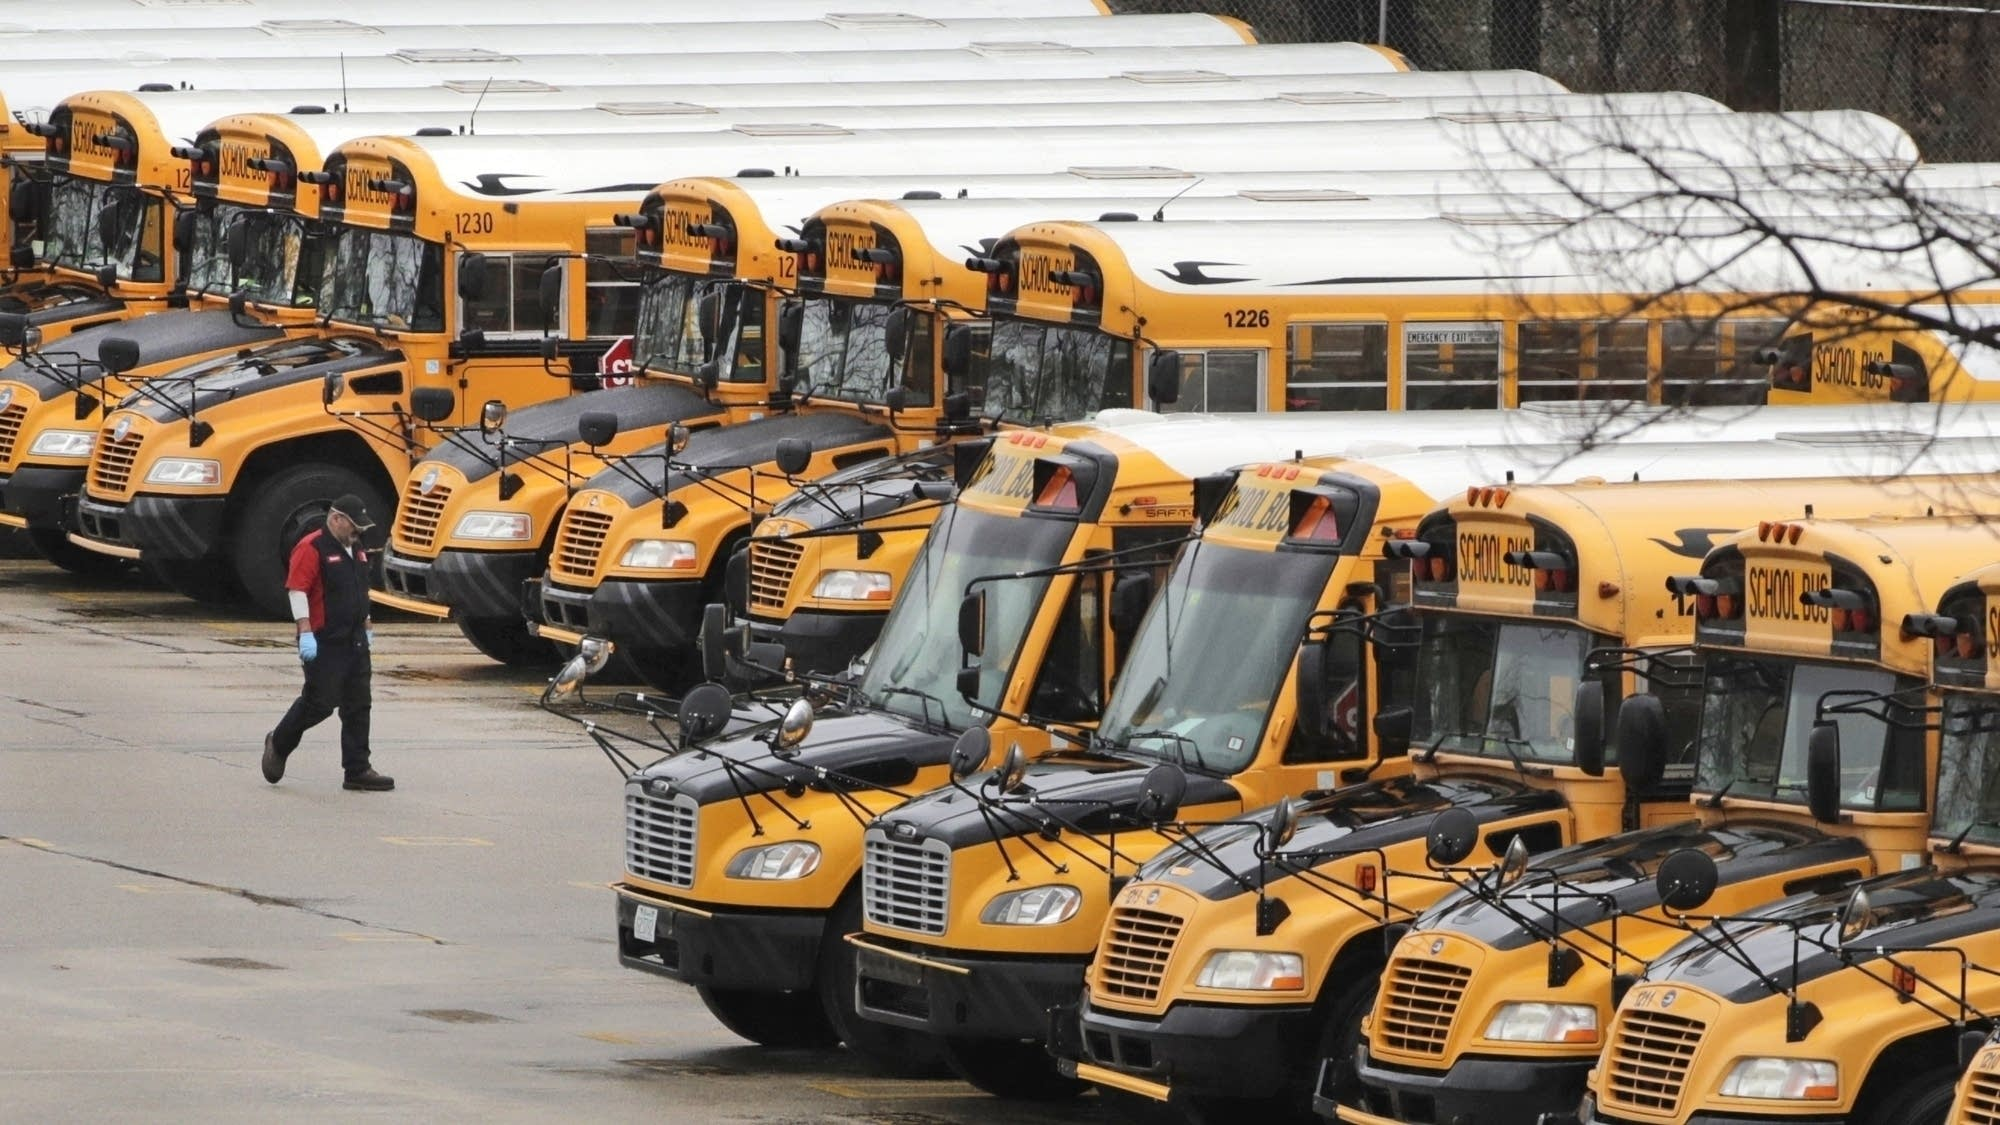 School buses parked at a depot.